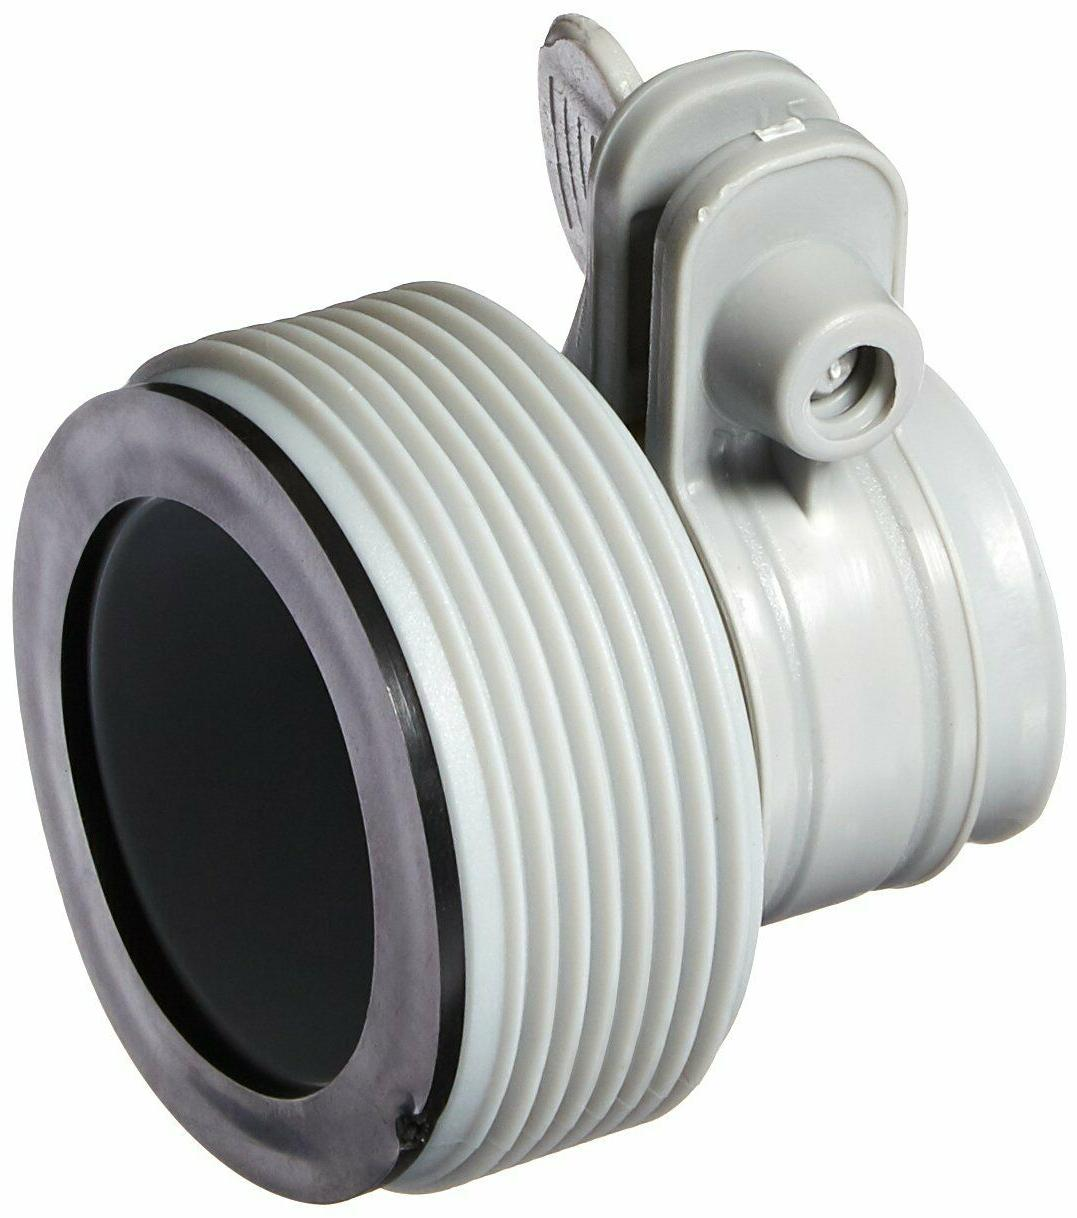 Replacement Adapter 2 Set Pool Filter Parts Conversion New